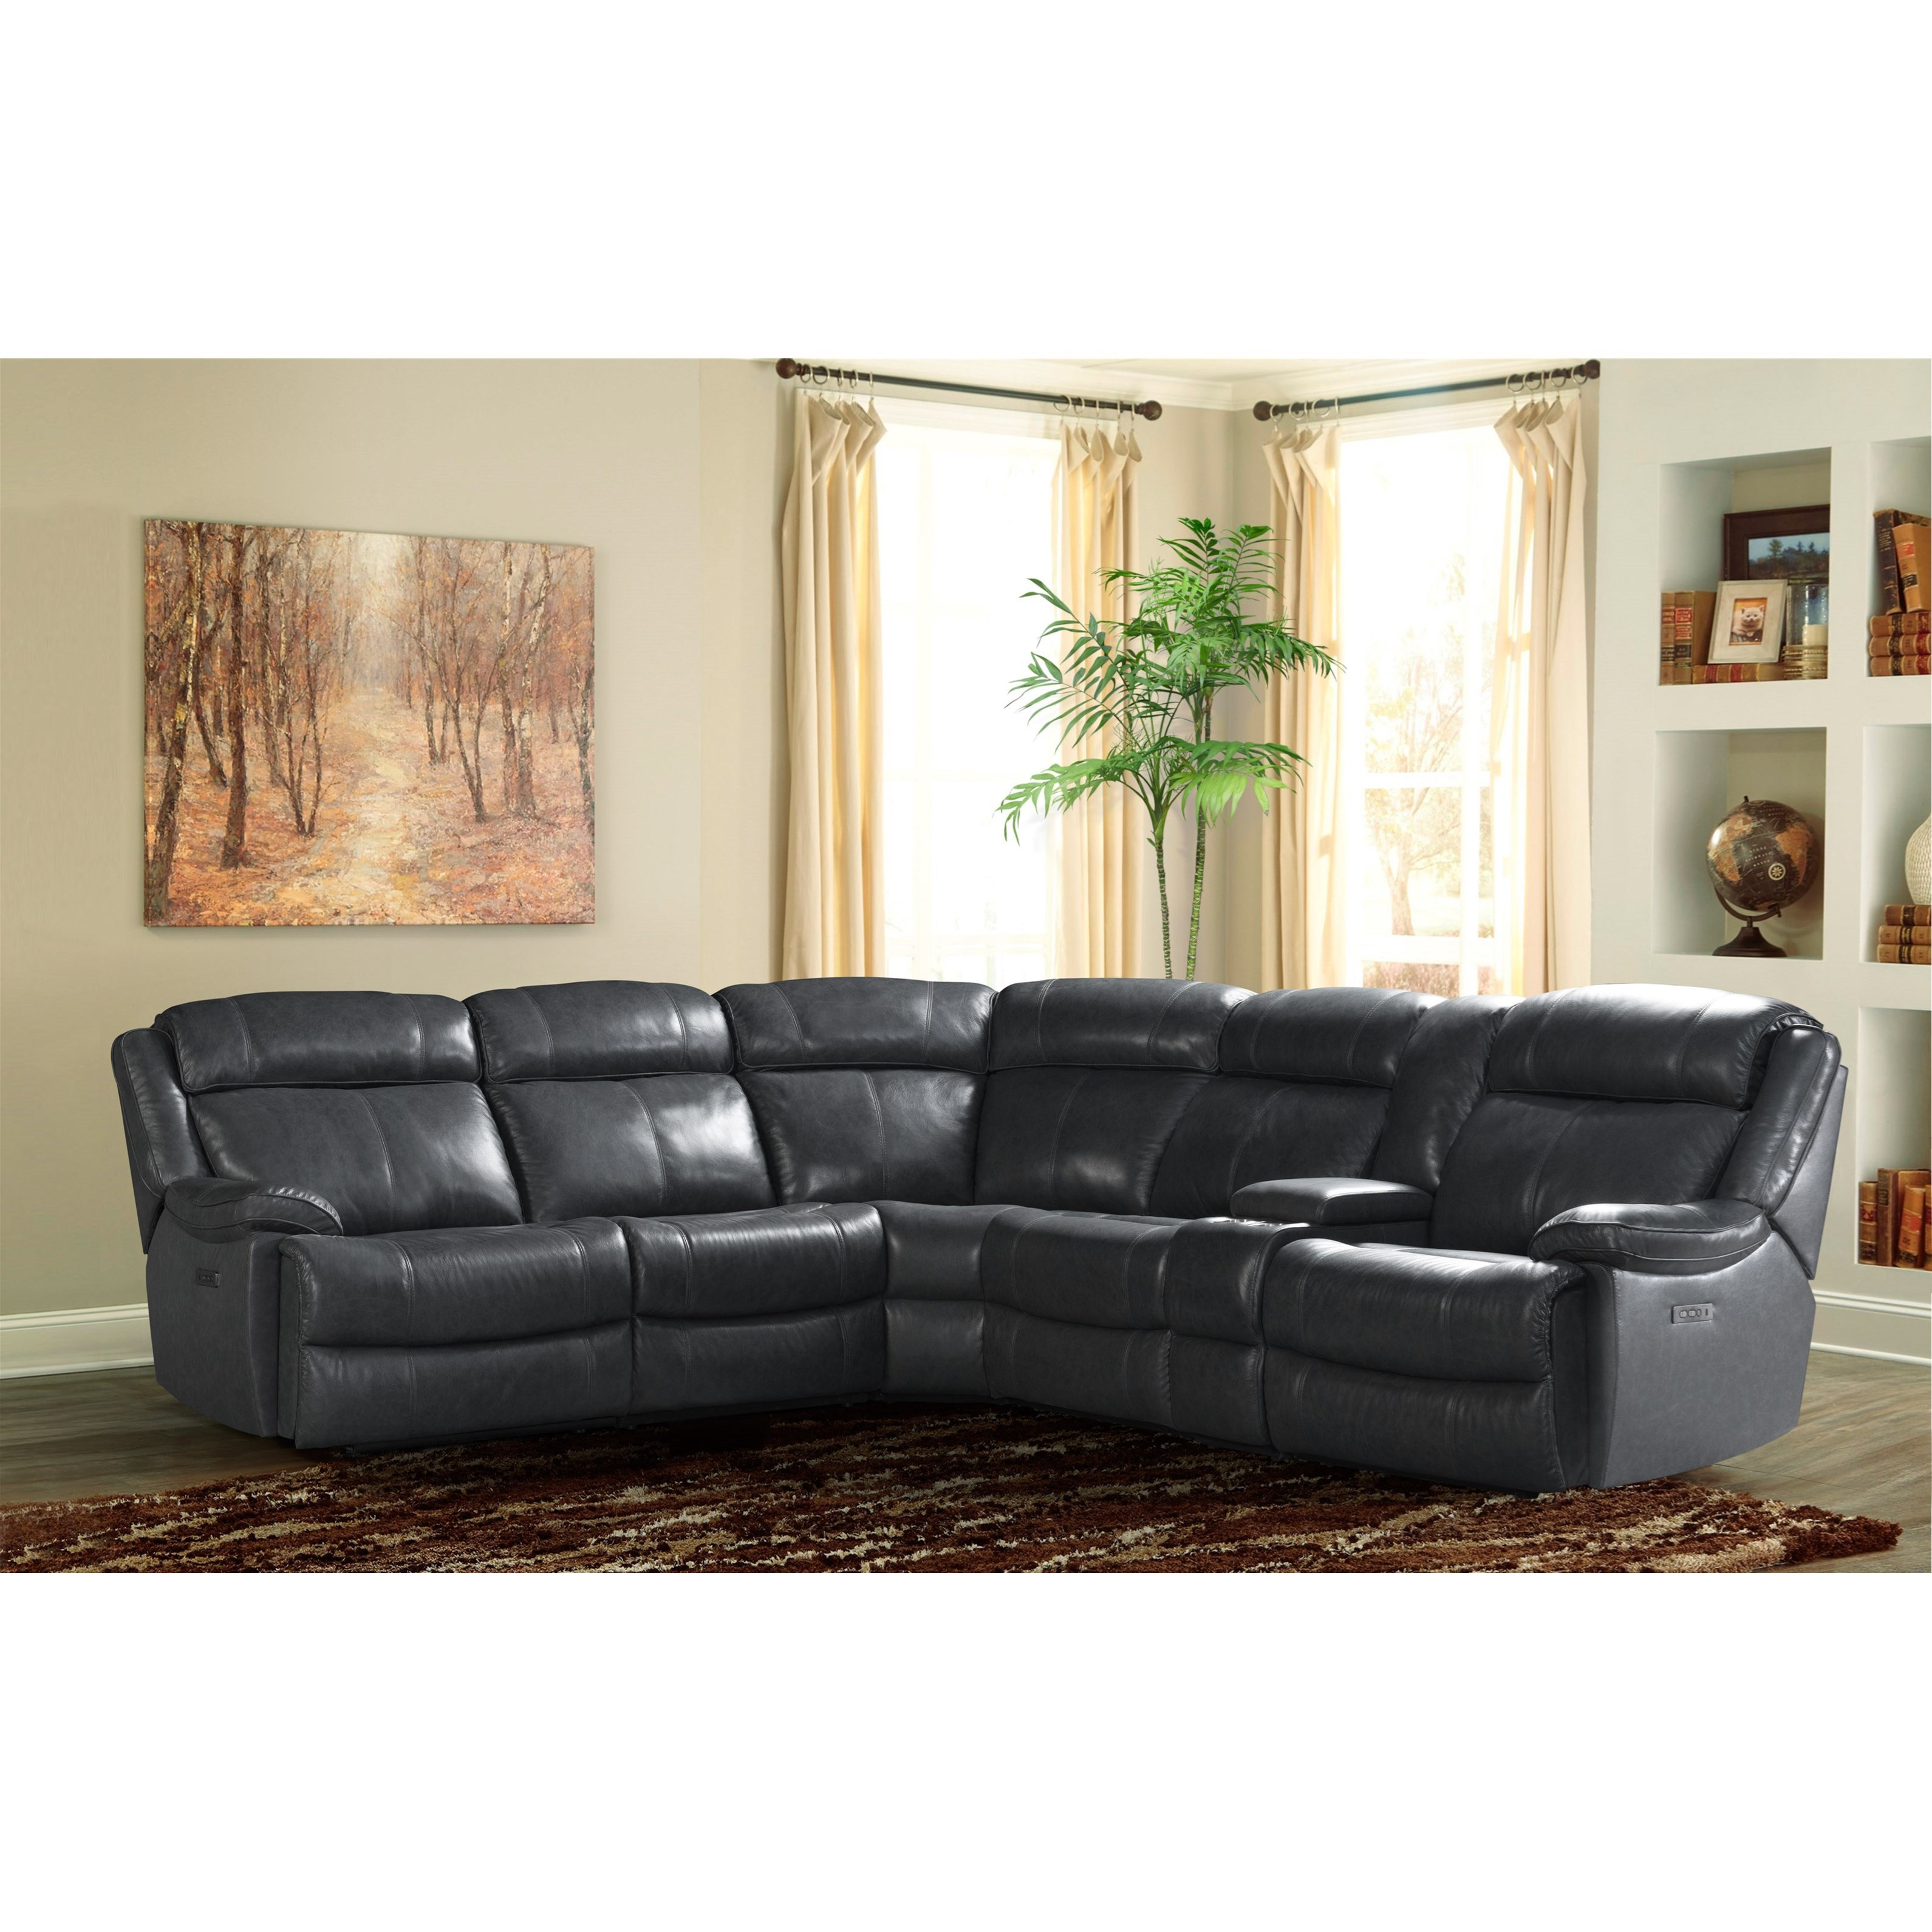 Avalon Dual Power Reclining Sectional Sofa by VFM Signature at Virginia Furniture Market